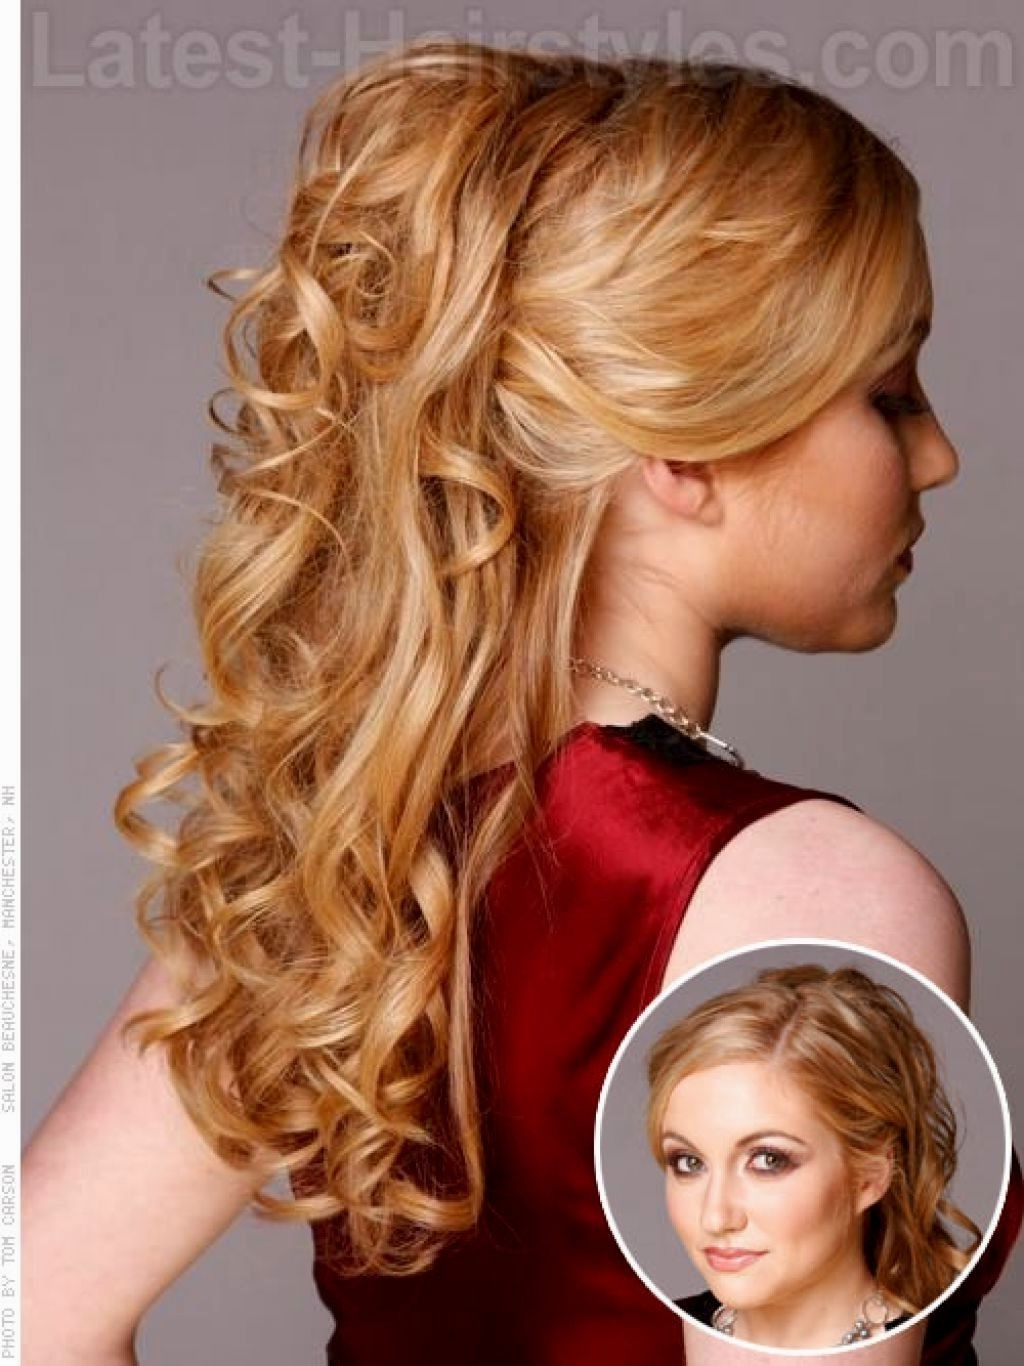 Prom Hairstyles For Medium Length Hair Homecoming Hairstyles Down Intended For Homecoming Updos For Medium Length Hair (View 6 of 15)